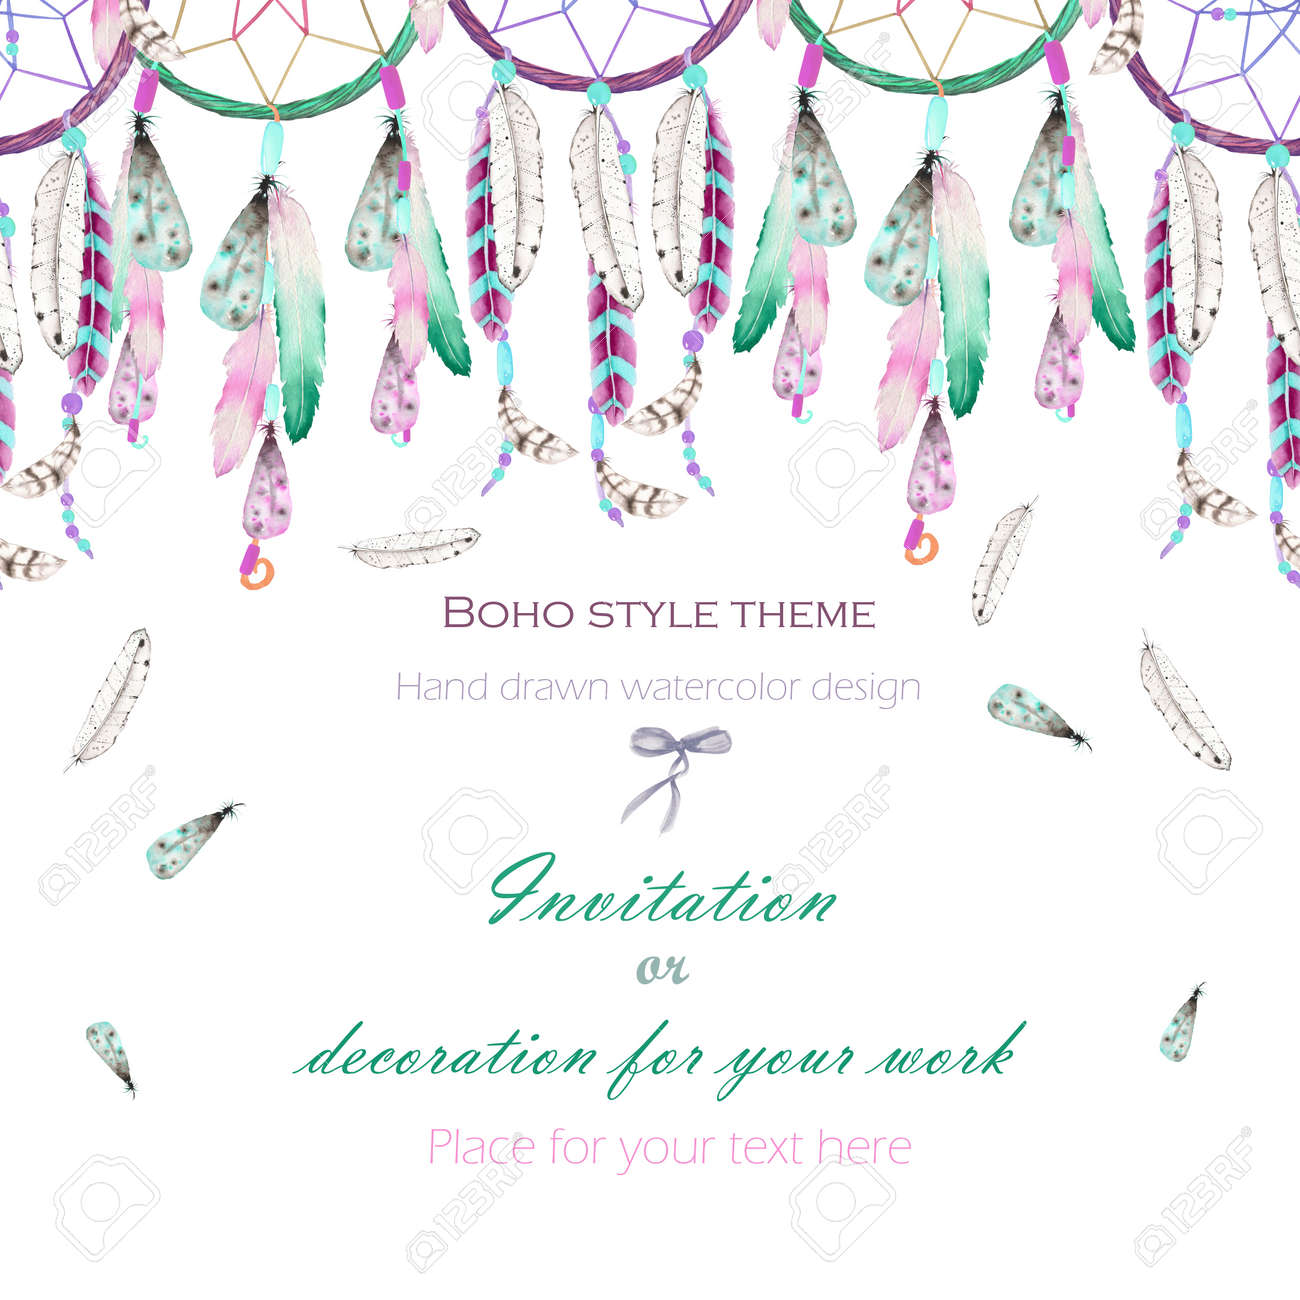 background template postcard with the watercolor dreamcatchers